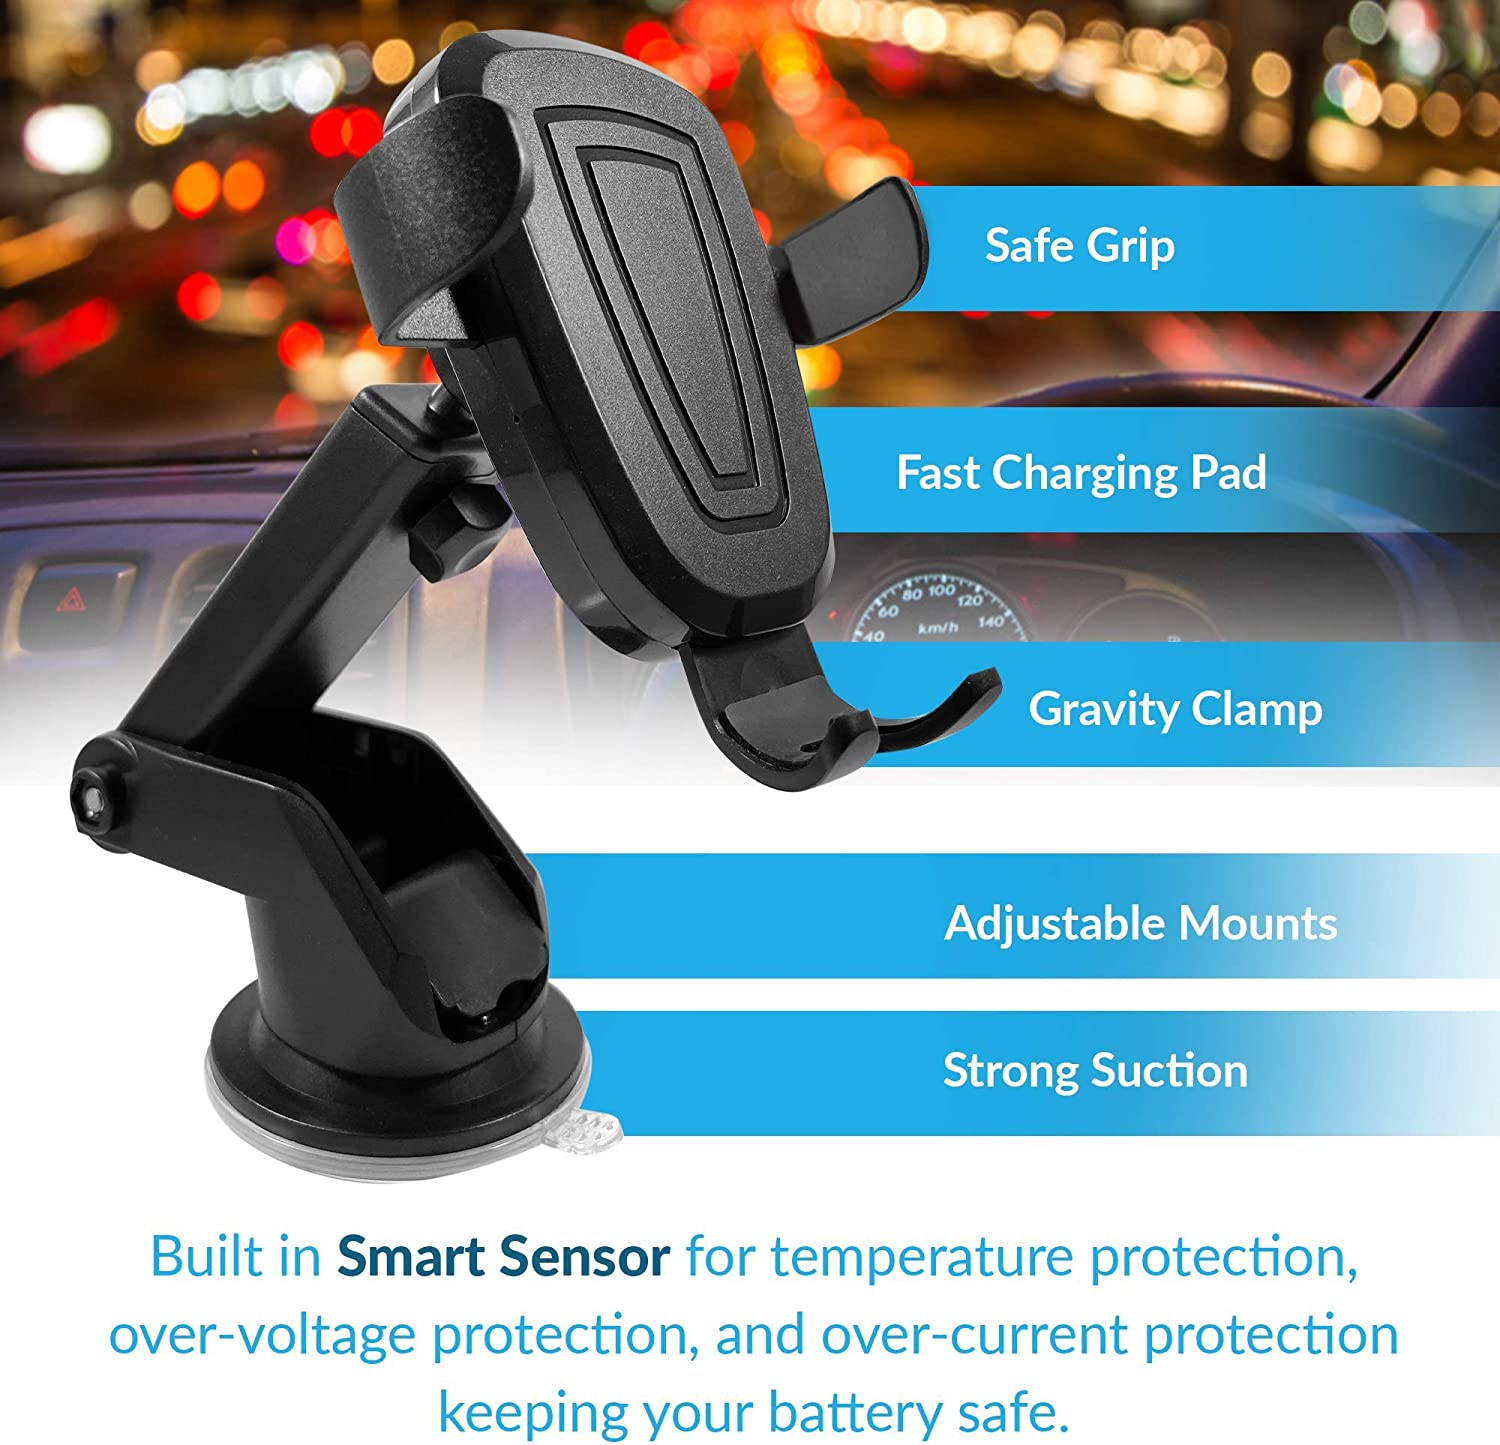 /& Later Tractex Wireless Car Charger 10W Dash//Windshield /& Air Vent Compatible with iPhone 8//8 Plus /& Later Samsung S6 Edge 7.5W Qi Fast Charging Gravity Clamping Mount